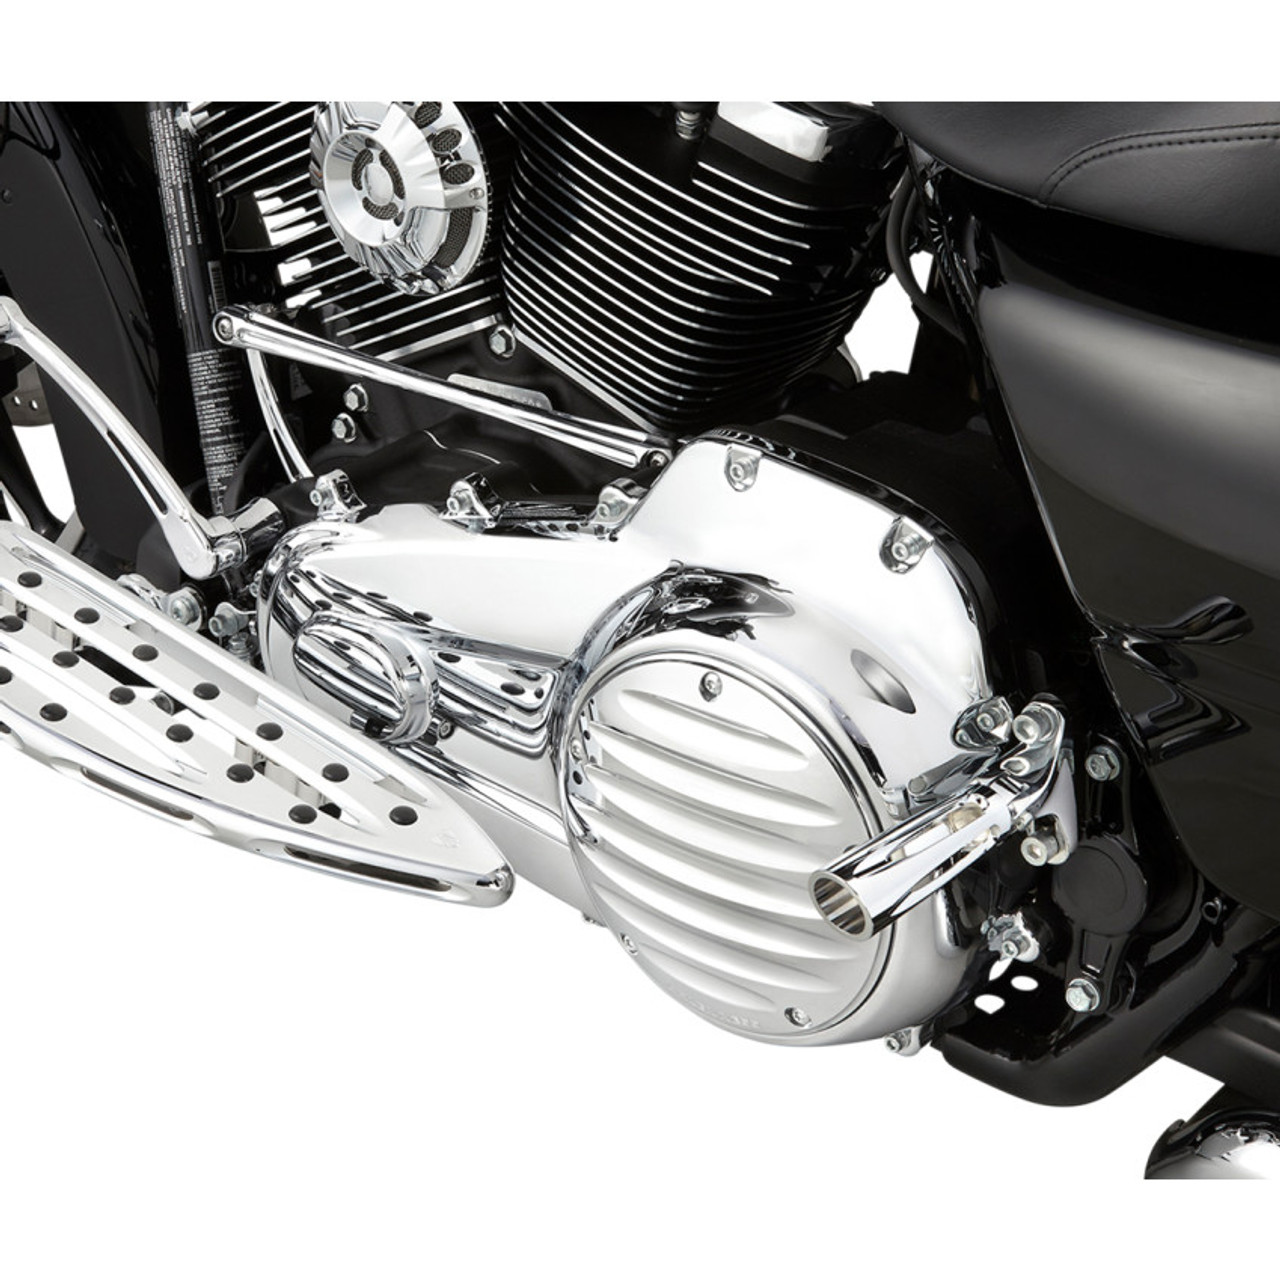 Drag Specialties Chrome Derby Cover for 1999-2018 Harley Big Twin